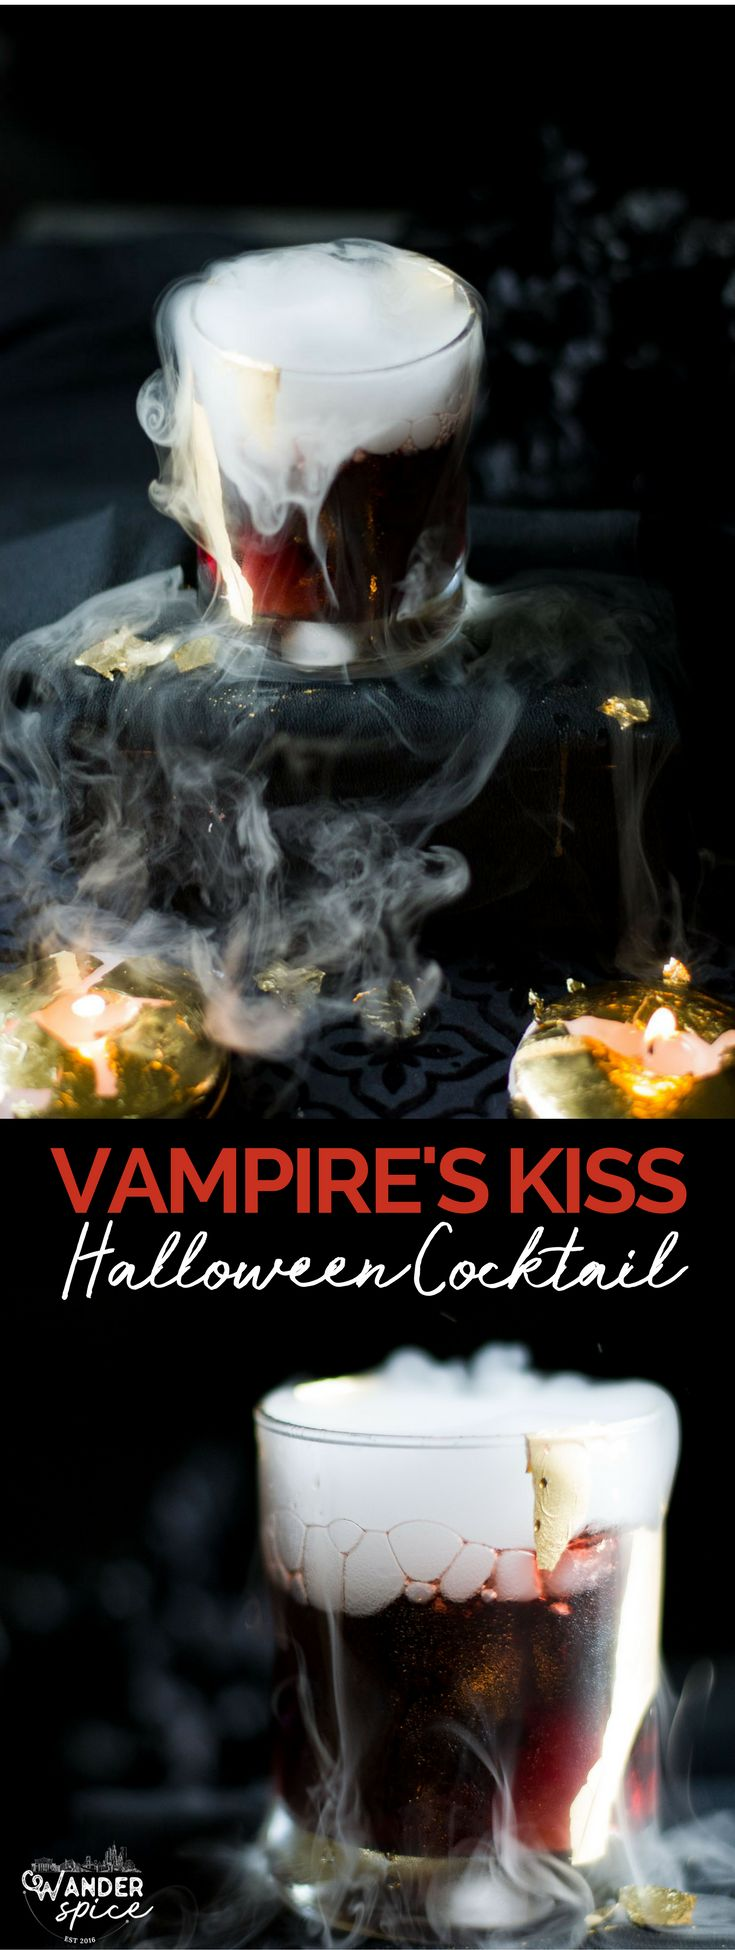 Vampire's Kiss Cocktail - Halloween Cocktail | Recipe | Spooky | Easy | Spooky | with Dry Ice